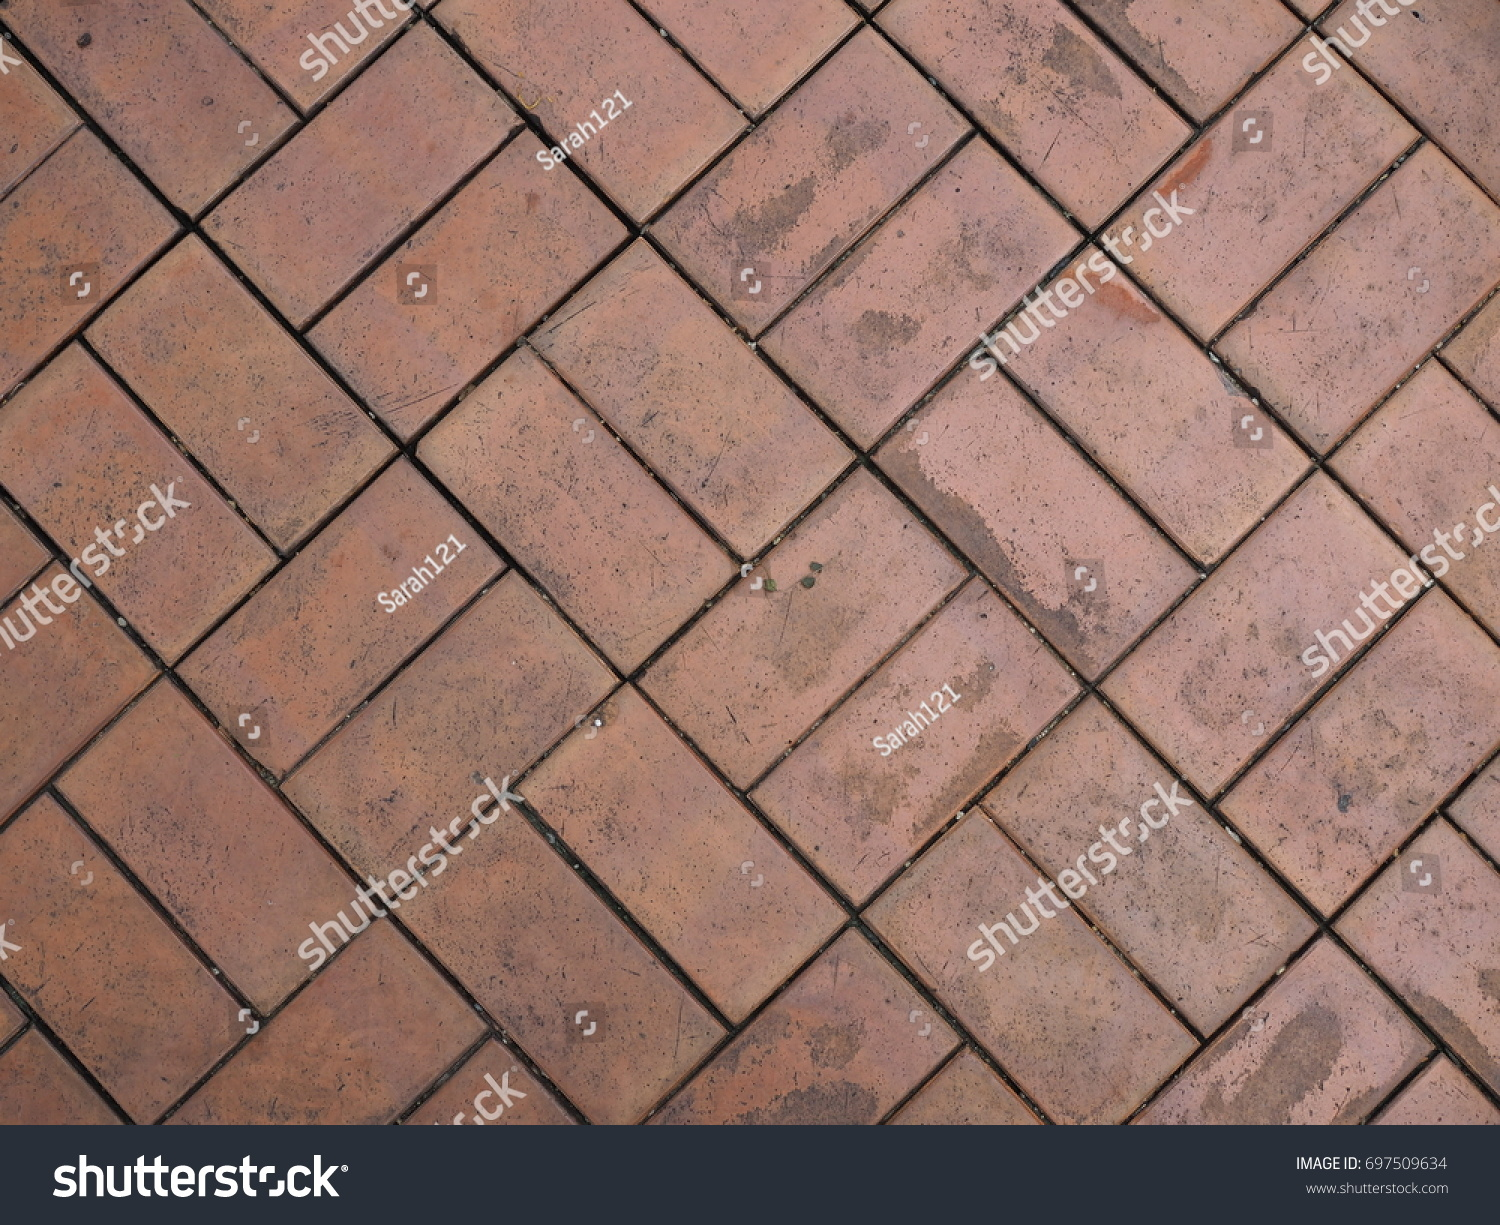 Old dirty red brown rectangle shape stock photo 697509634 old dirty red brown rectangle shape clay brick tile floor pattern with black stains dailygadgetfo Gallery